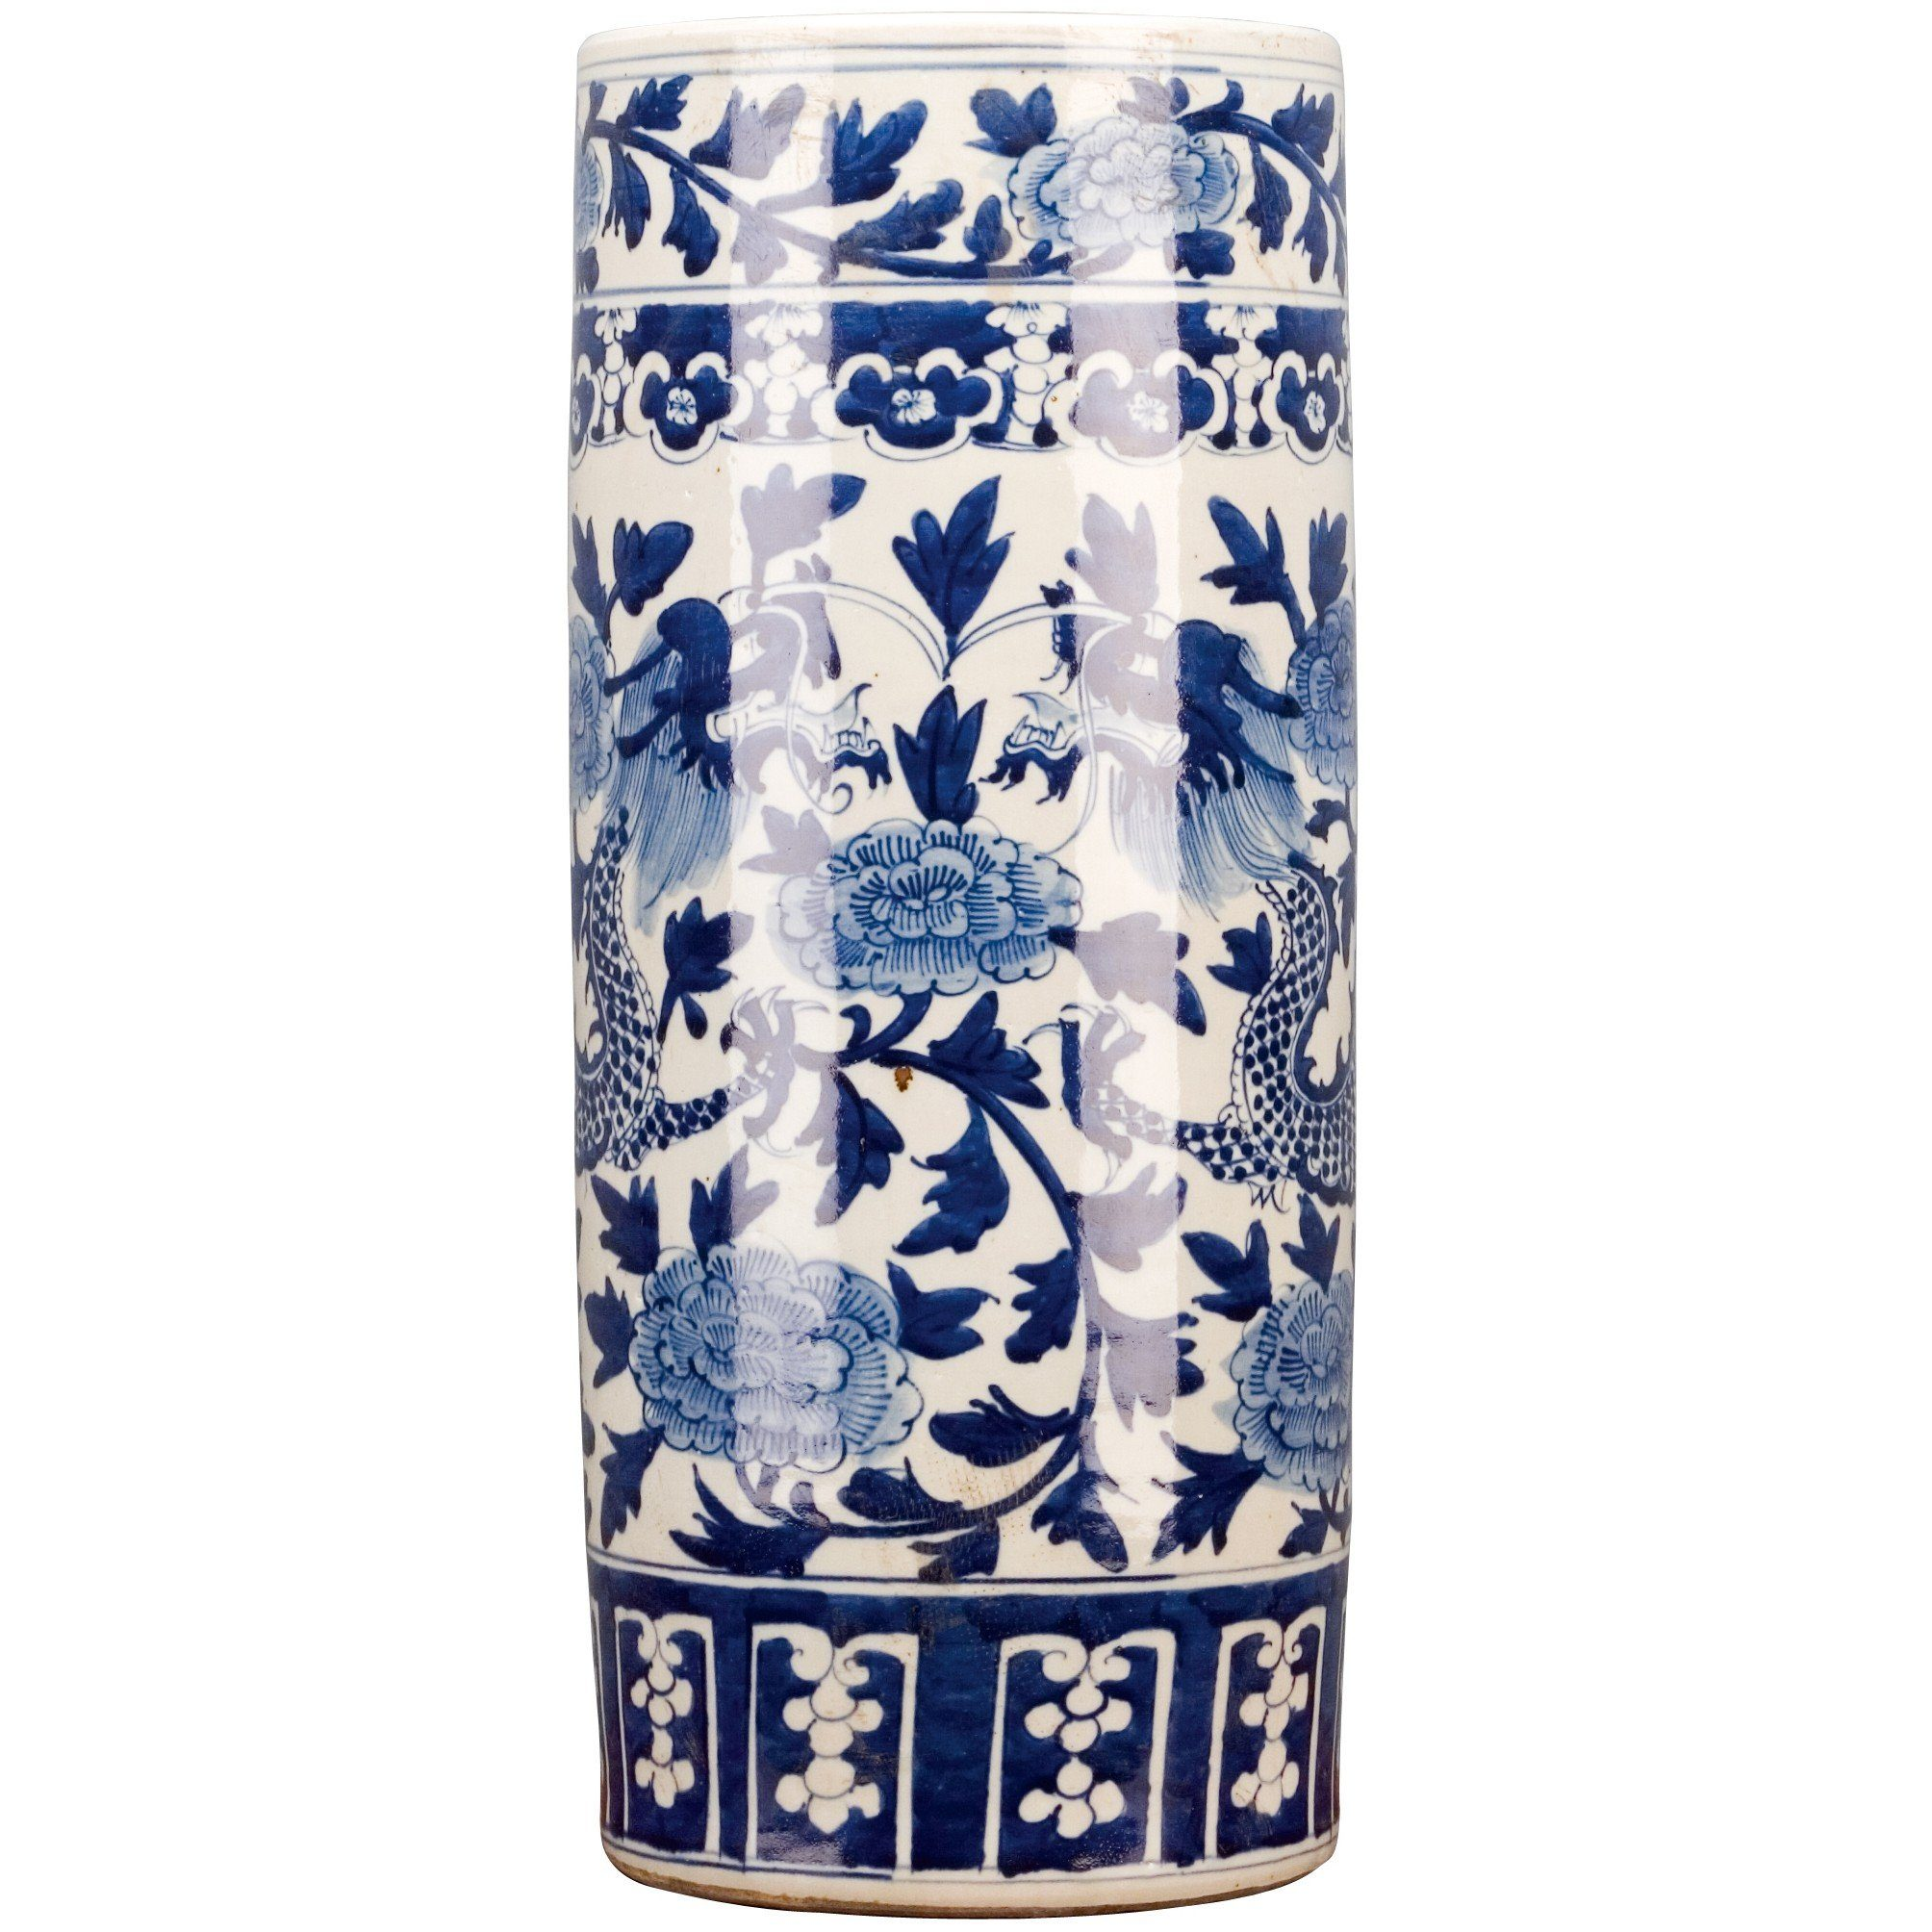 Lovecup Classic Blue And White Porcelain Umbrella Stand   LOVECUP